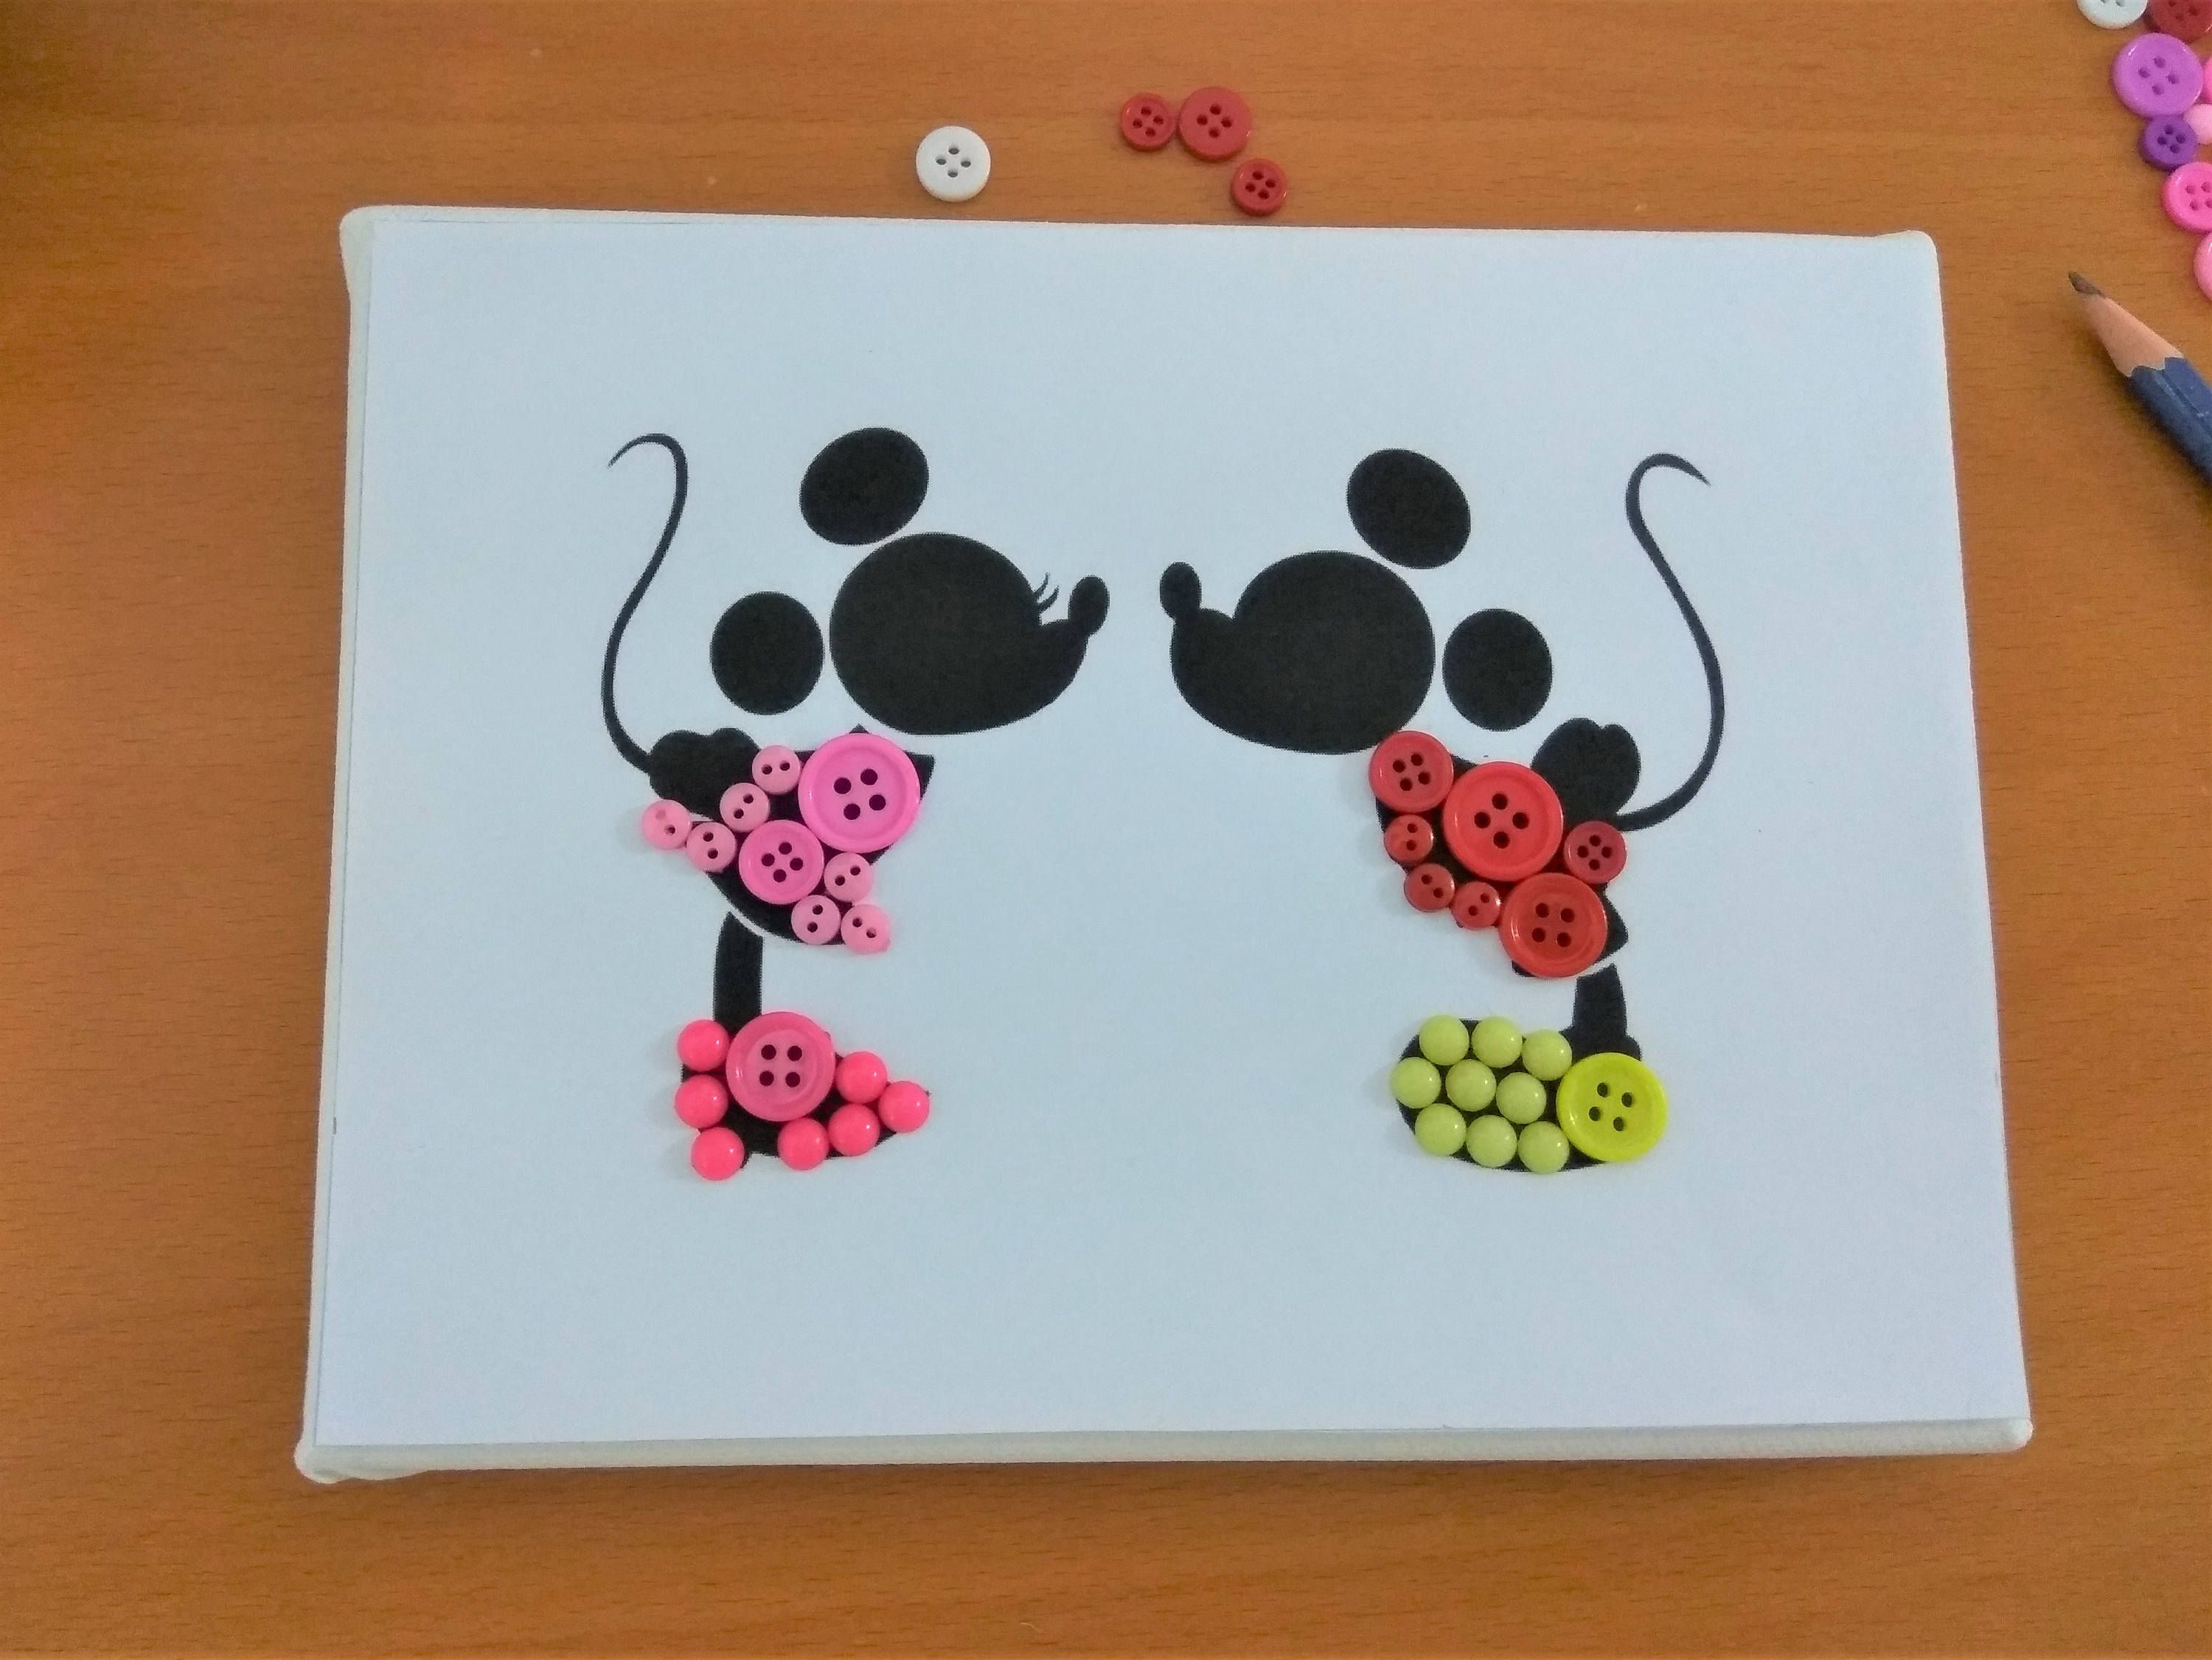 Mickey and minnie diy button art kit button canvas craft kit art diy button art kit mickey and minnie button canvas craft kit art puzzle solutioingenieria Image collections